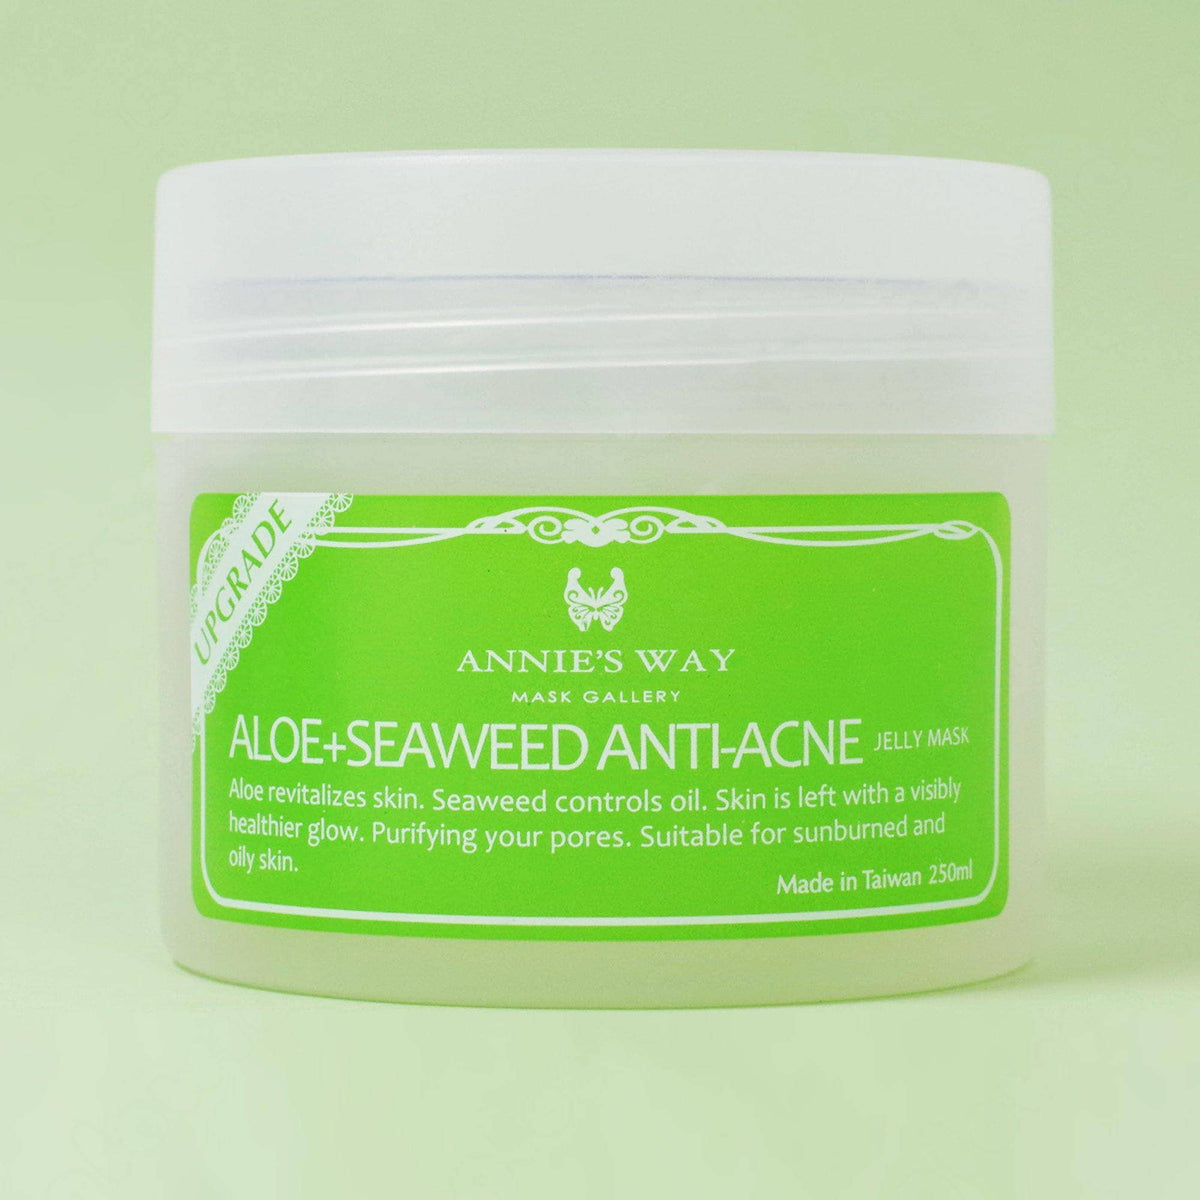 Annie's Way Aloe + Seaweed Anti-Acne Jelly Mask